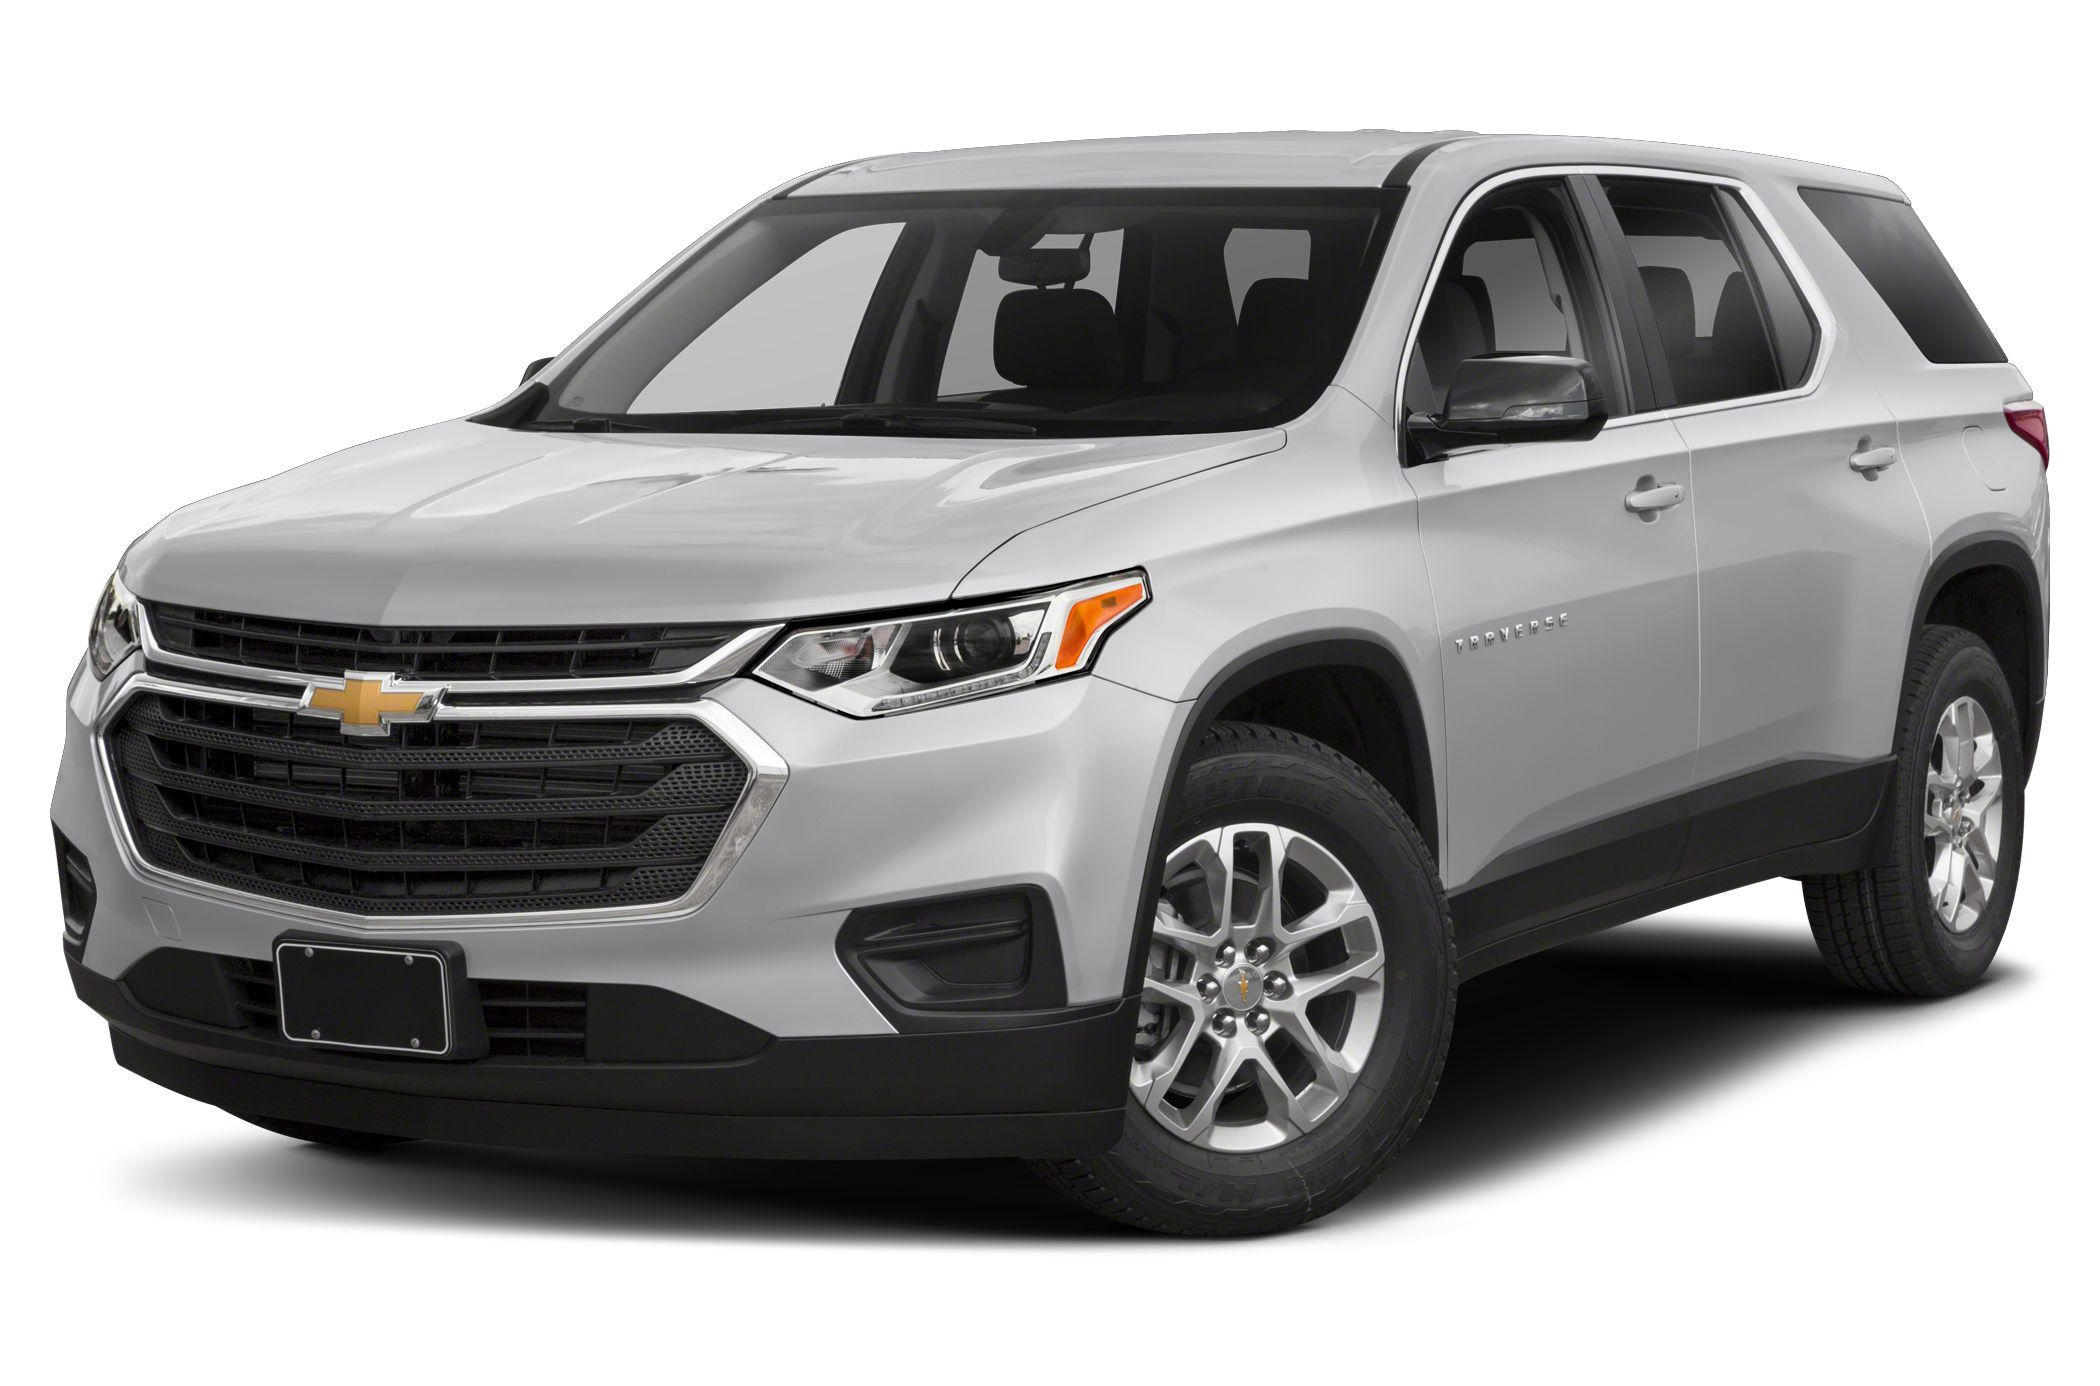 2018 Chevy Traverse White Check More At Http Www Autocarblog